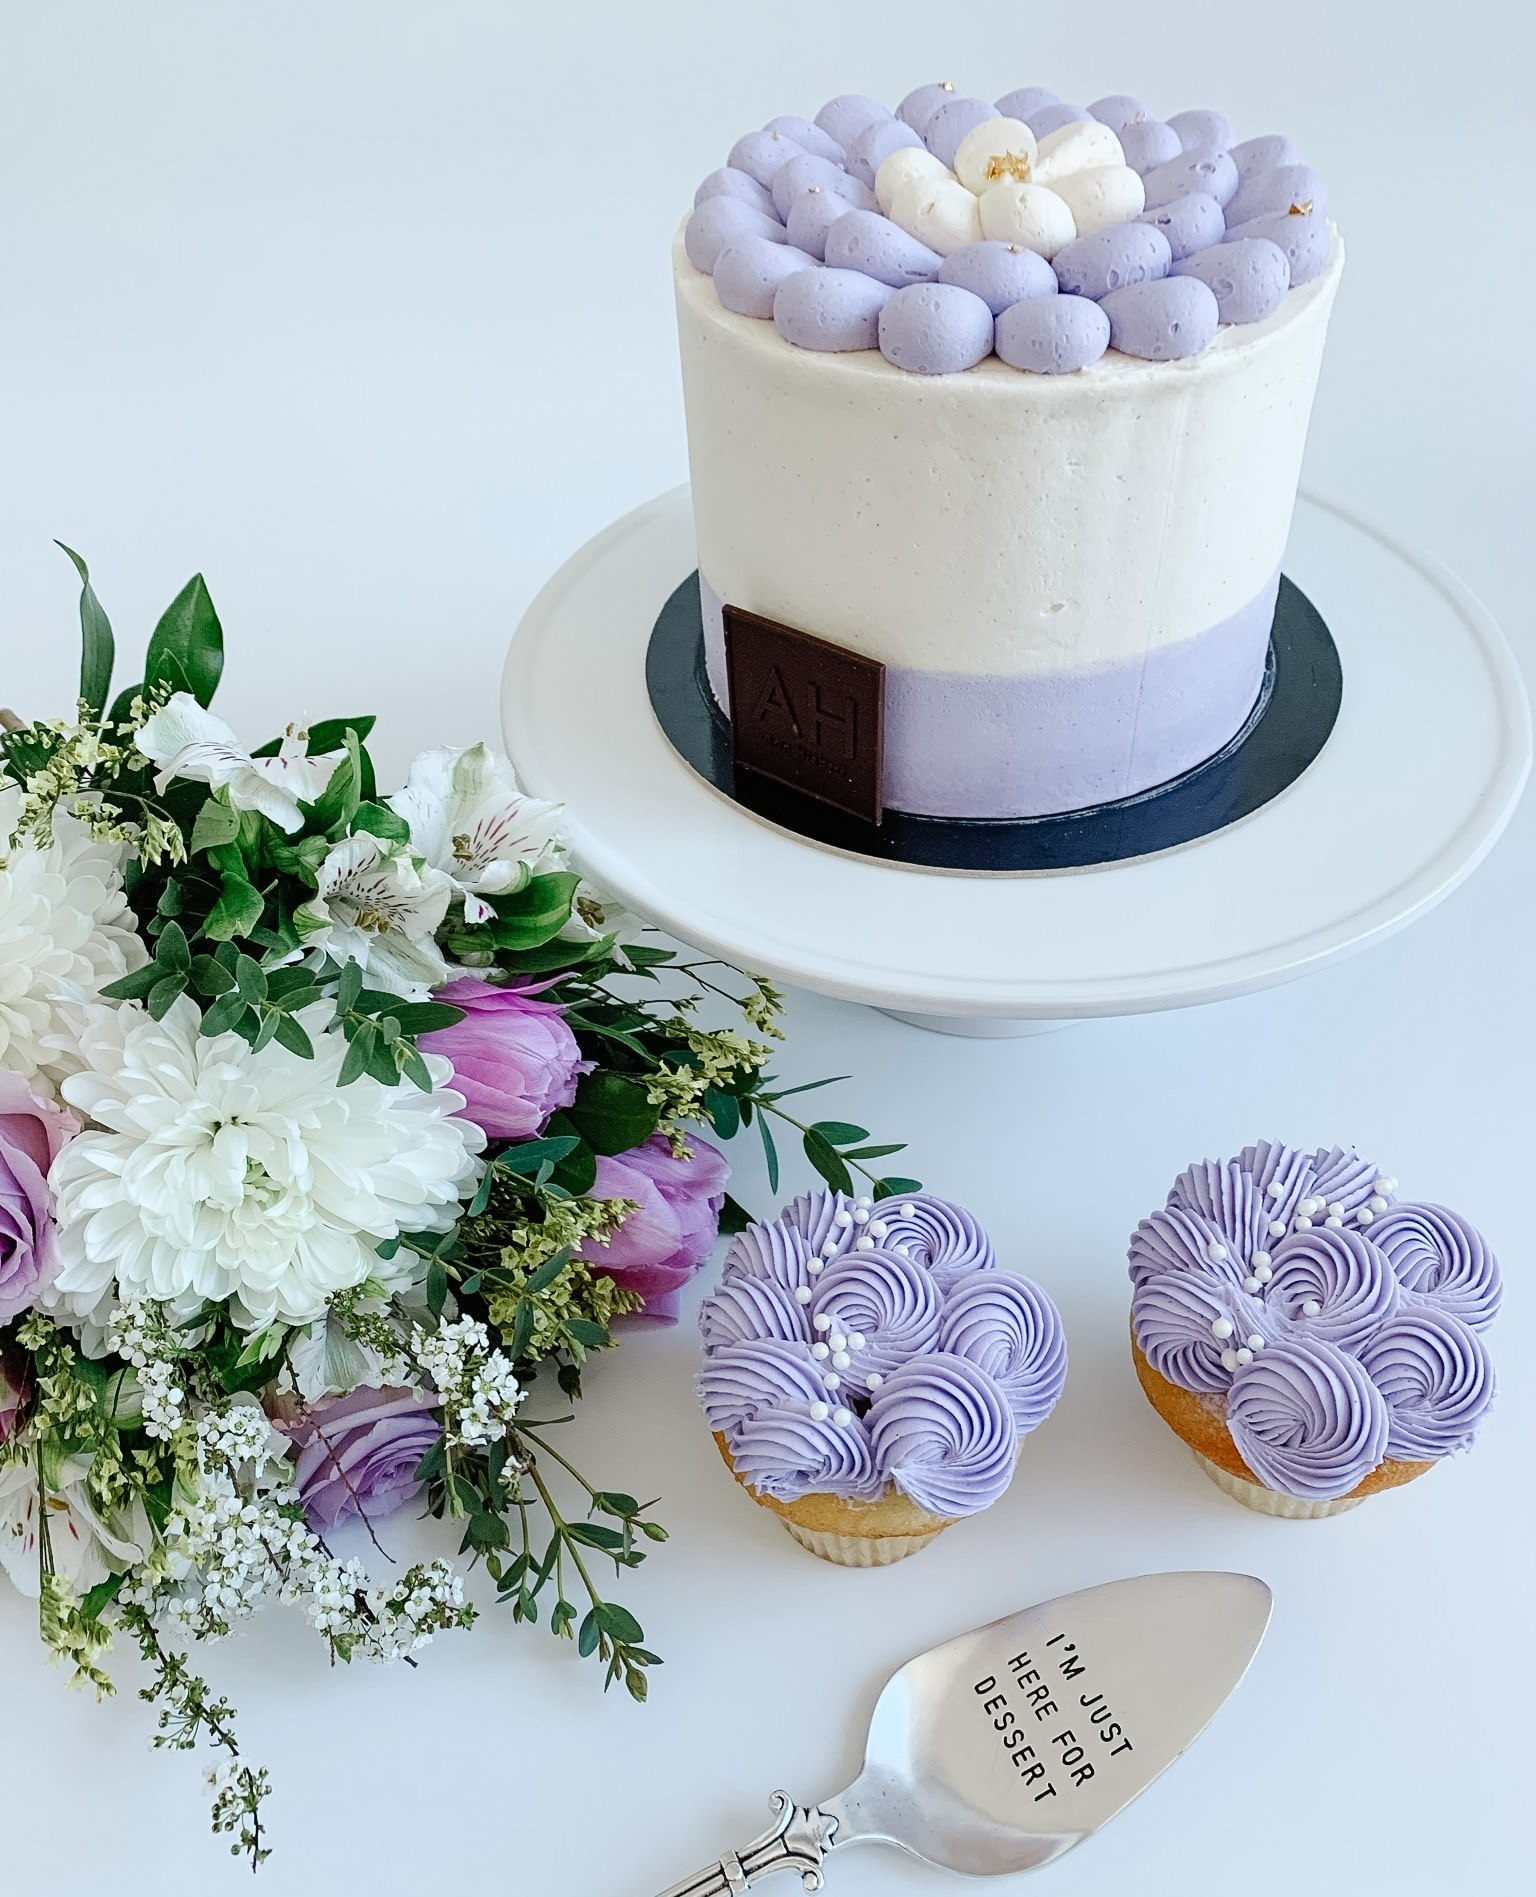 Purple Mother's Day cake from Arin Heibert subscription